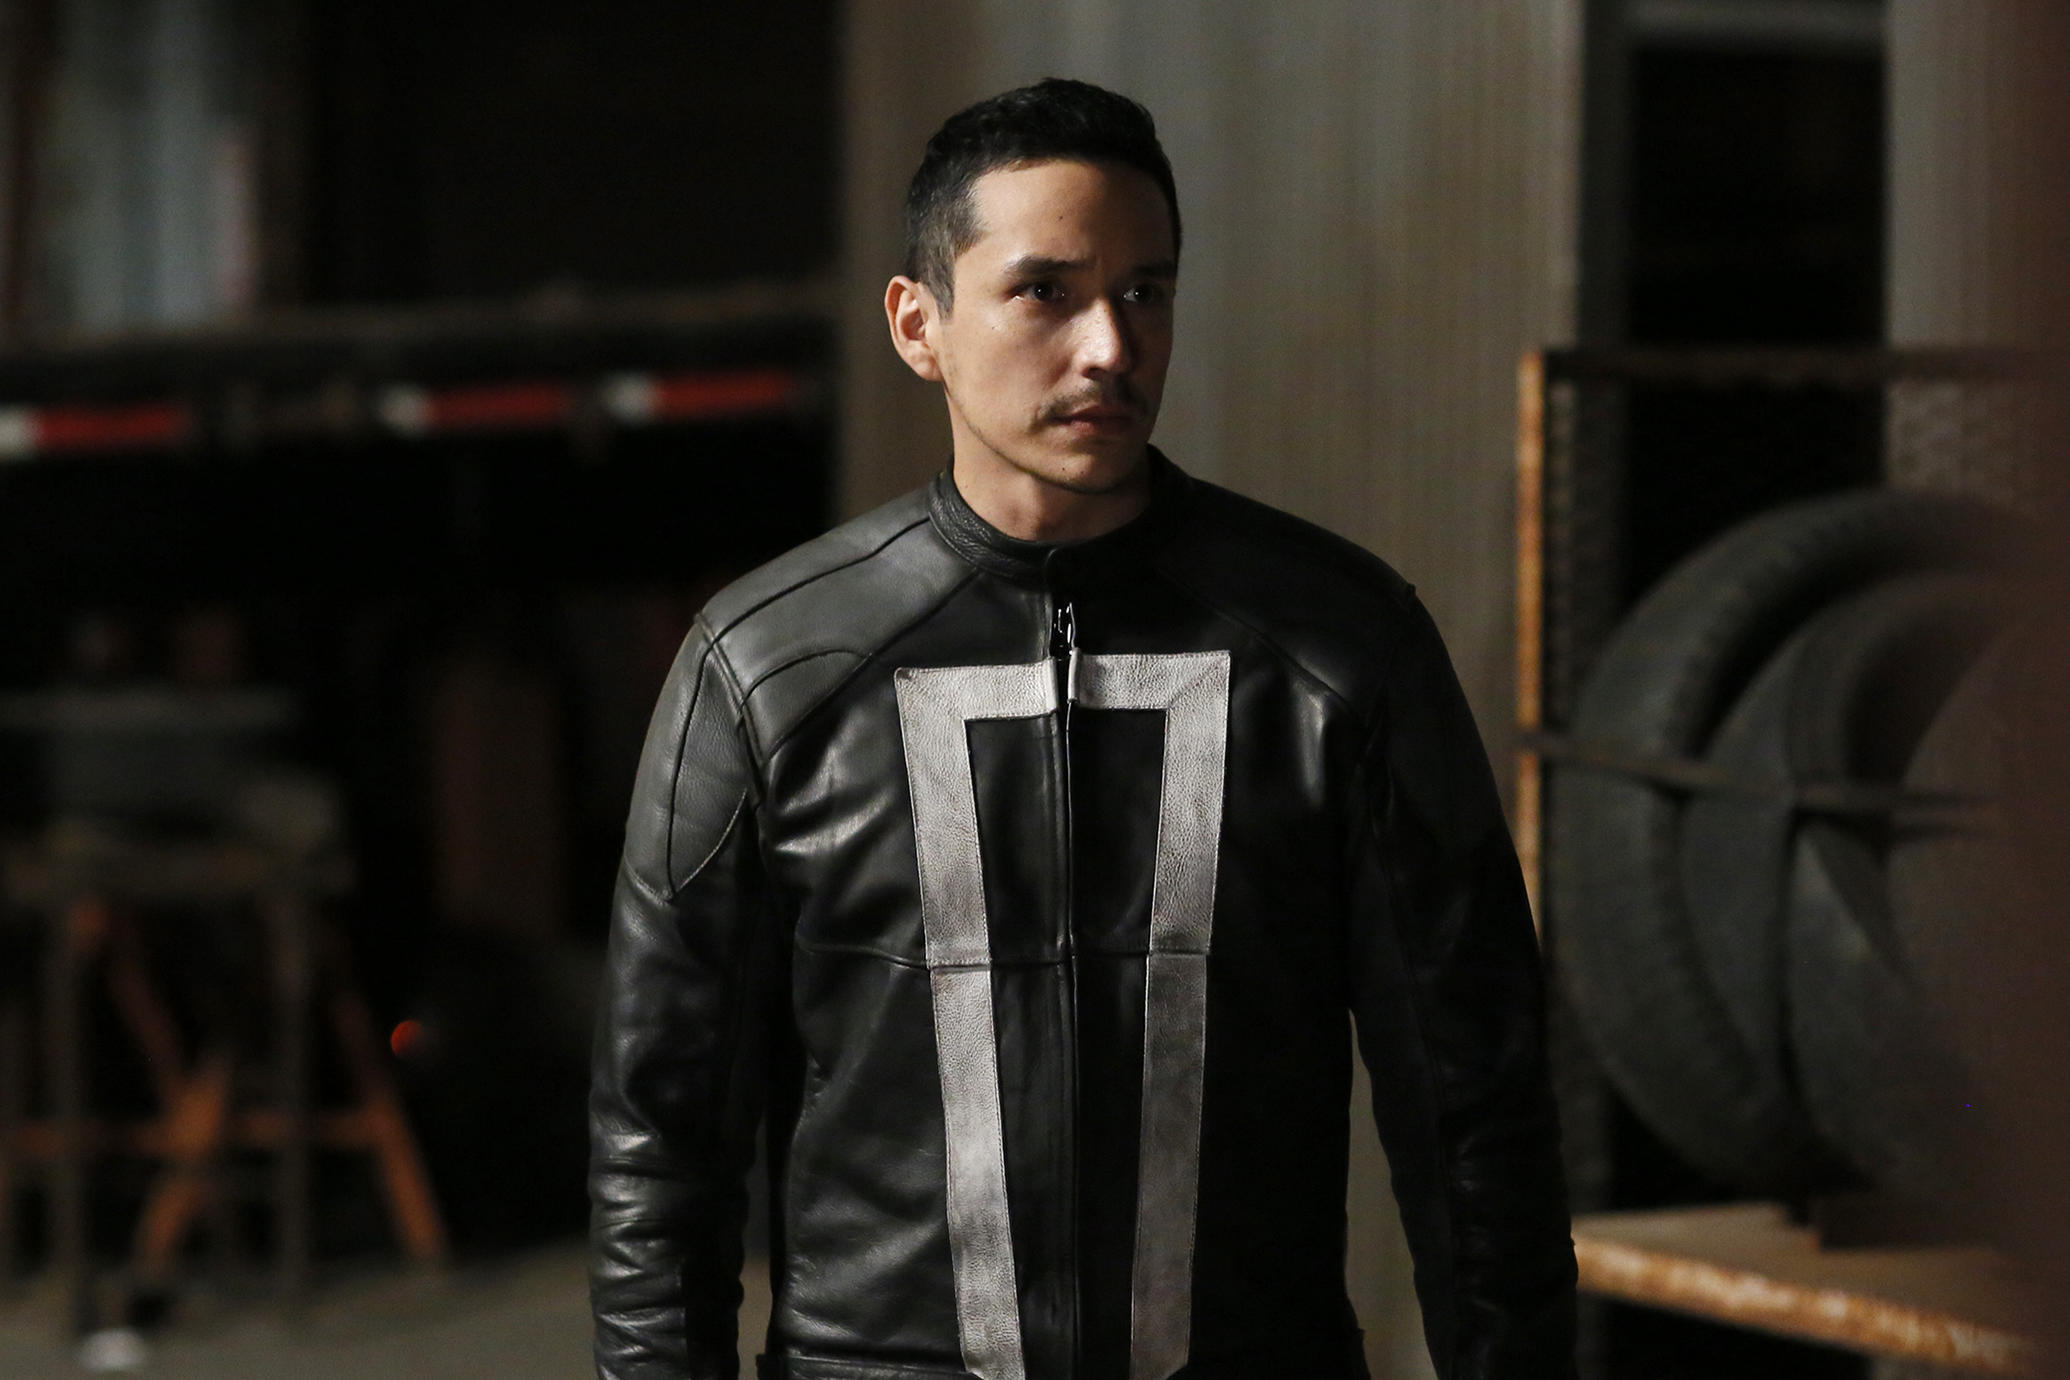 """MARVEL'S AGENTS OF S.H.I.E.L.D. - """"The Ghost"""" - In the season premiere episode, """"The Ghost,"""" Ghost Rider is coming, and S.H.I.E.L.D will never be the same. """"Marvel's Agents of S.H.I.E.L.D."""" returns with a vengeance for the fourth exciting season in an all-new time period, TUESDAY, SEPTEMBER 20 (10:00-11:00 p.m. EDT), on the ABC Television Network. (ABC/Jennifer Clasen)"""